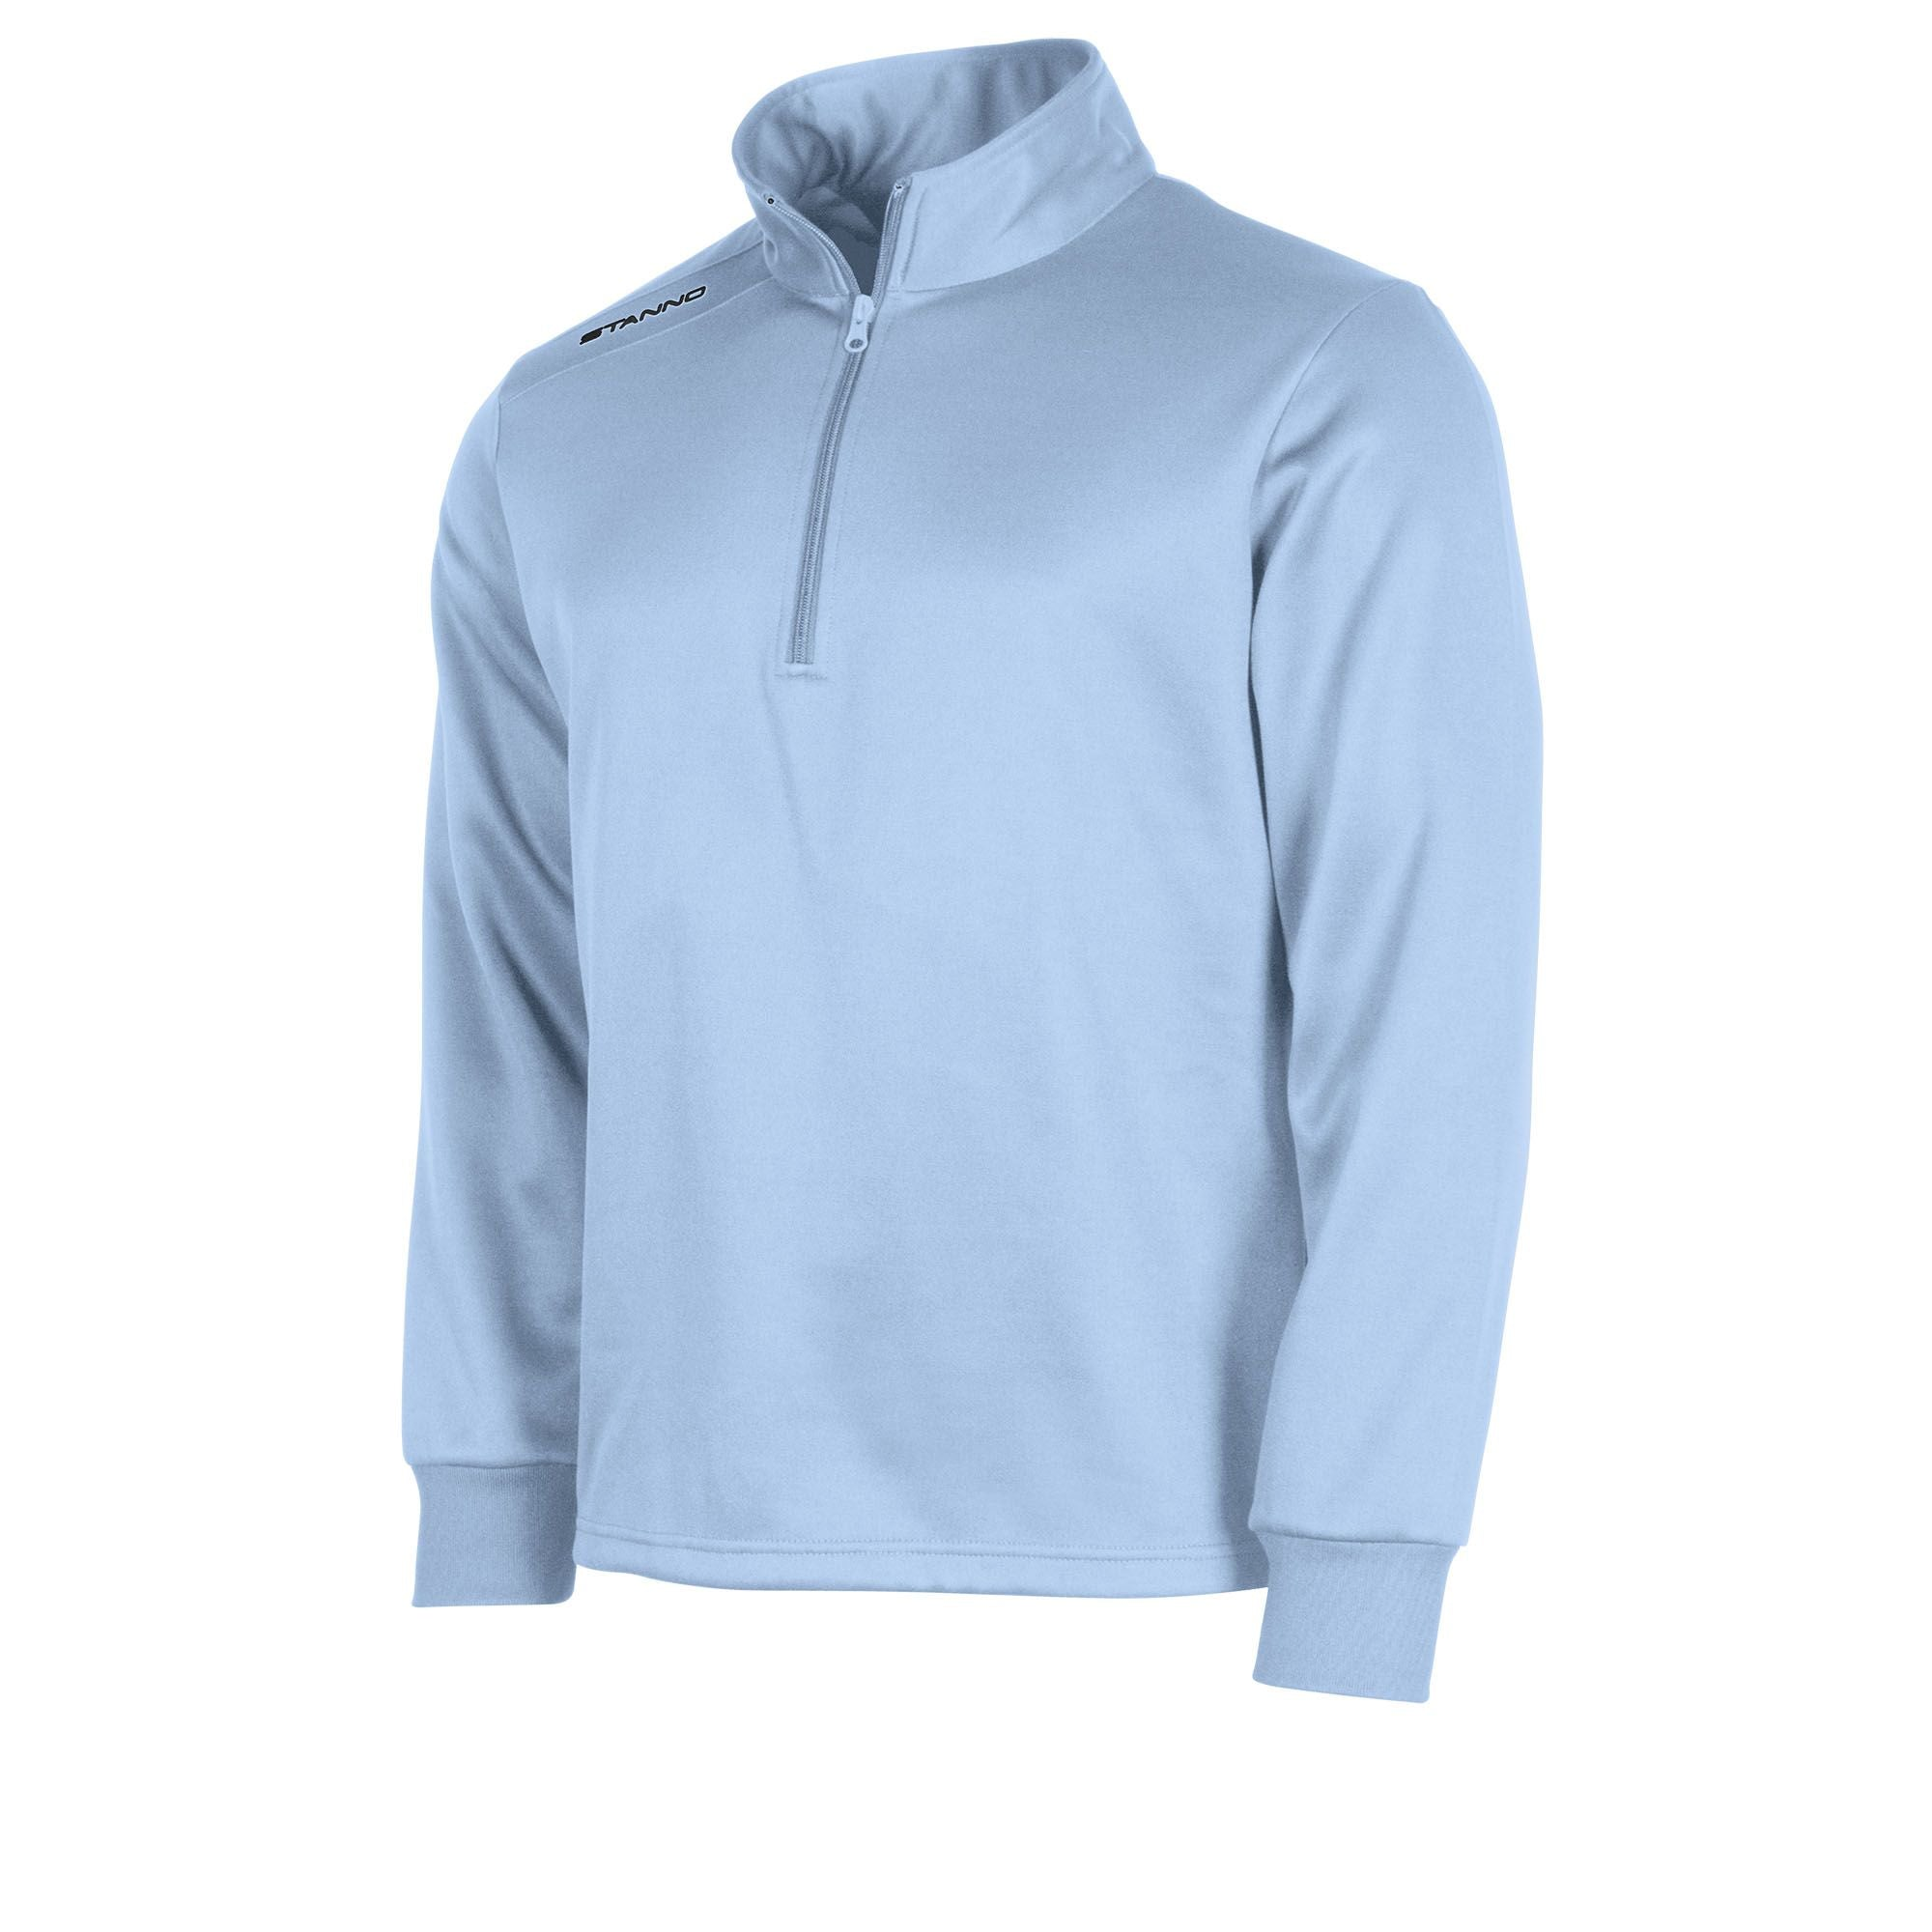 Front of sky blue Stanno Field half zip top with Stanno printed logo on right shoulder